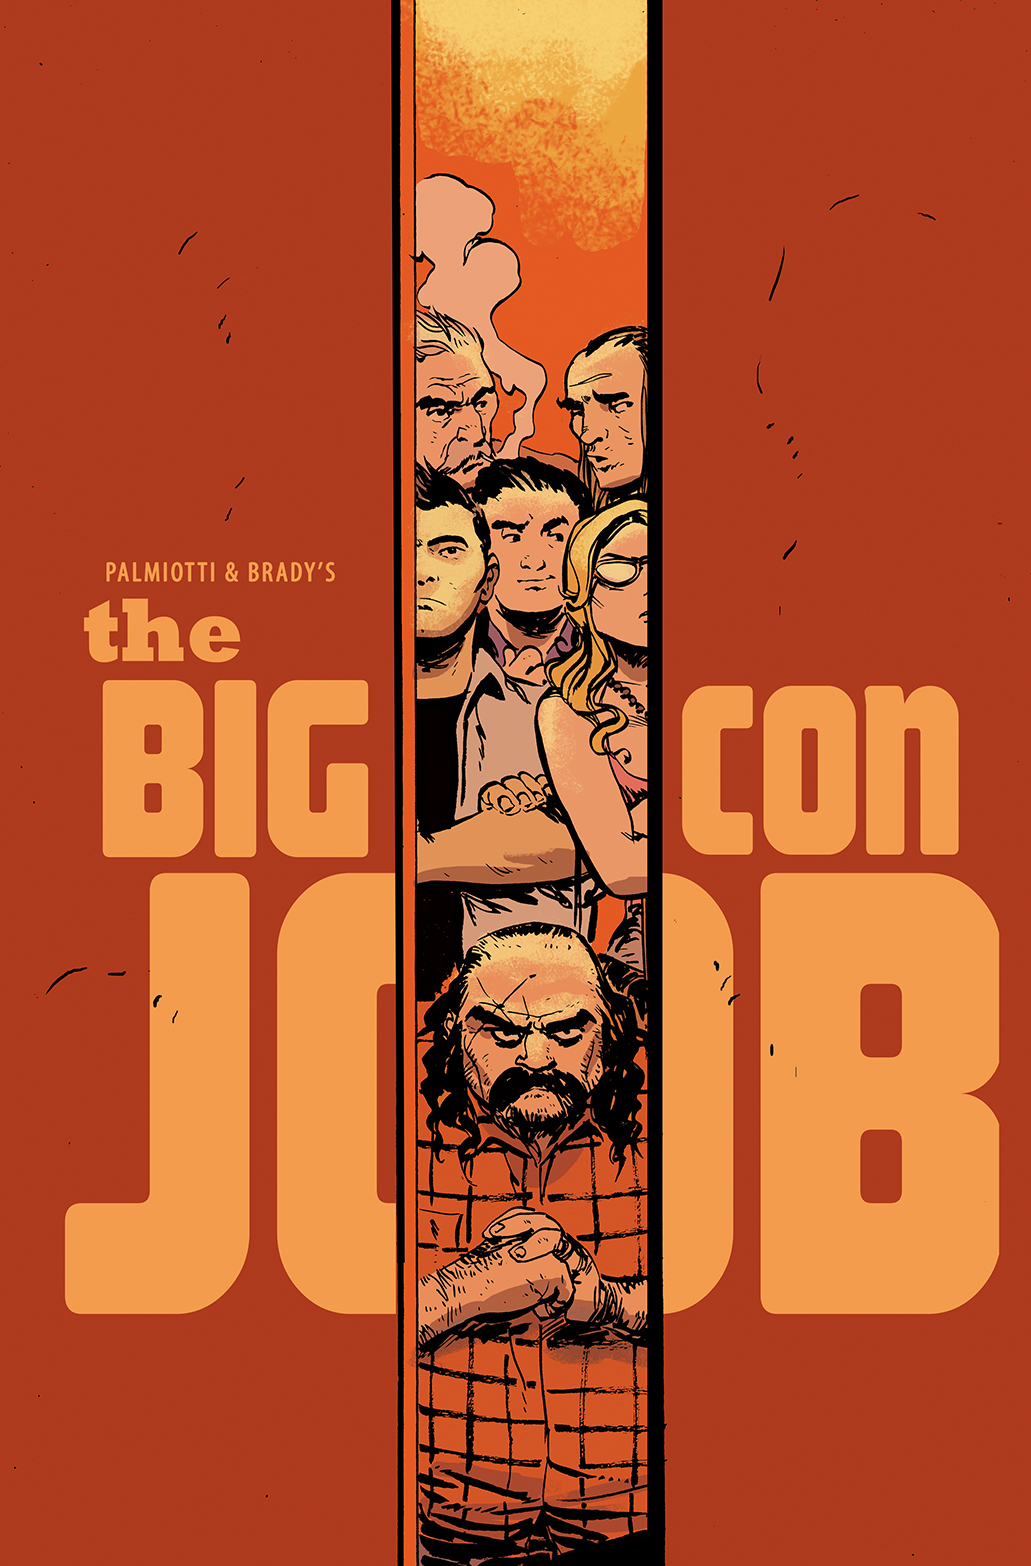 Palmiotti & Brady's The Big Con Job #1 Incentive Cover